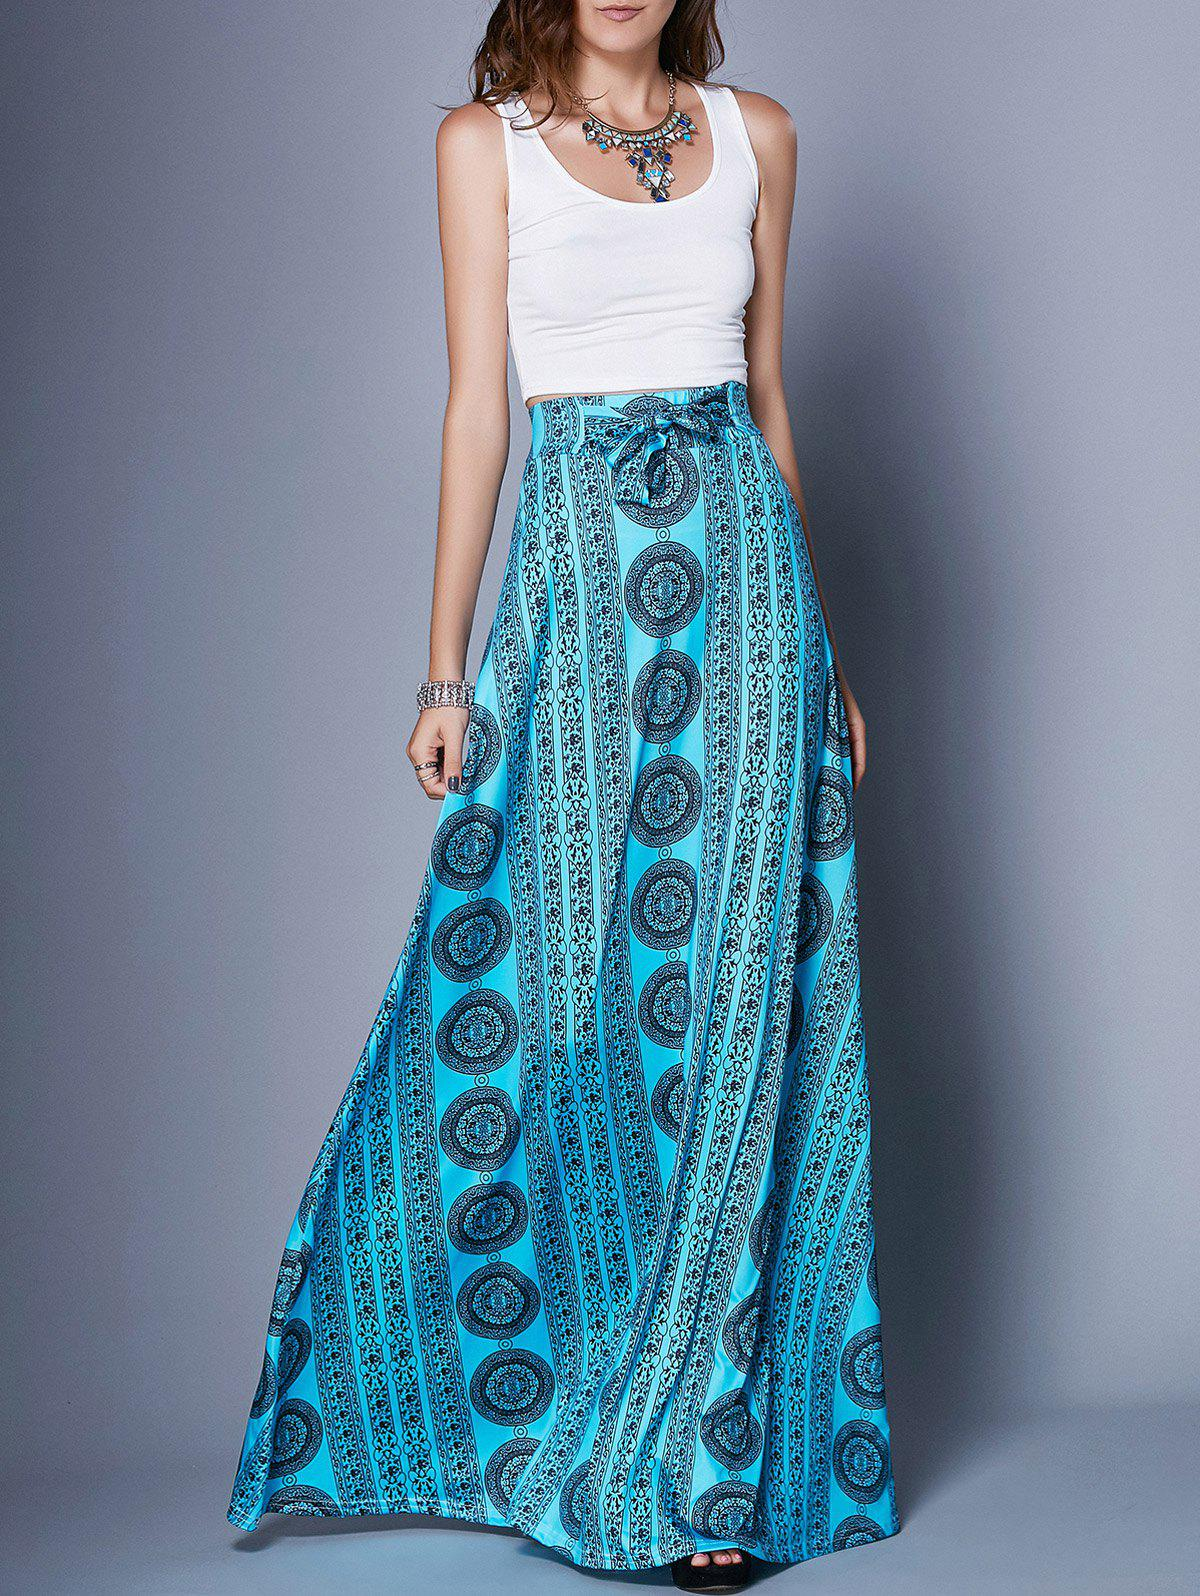 Stylish Women's Scoop Neck Tank Top + Printed Skirt Twinset - BLUE S